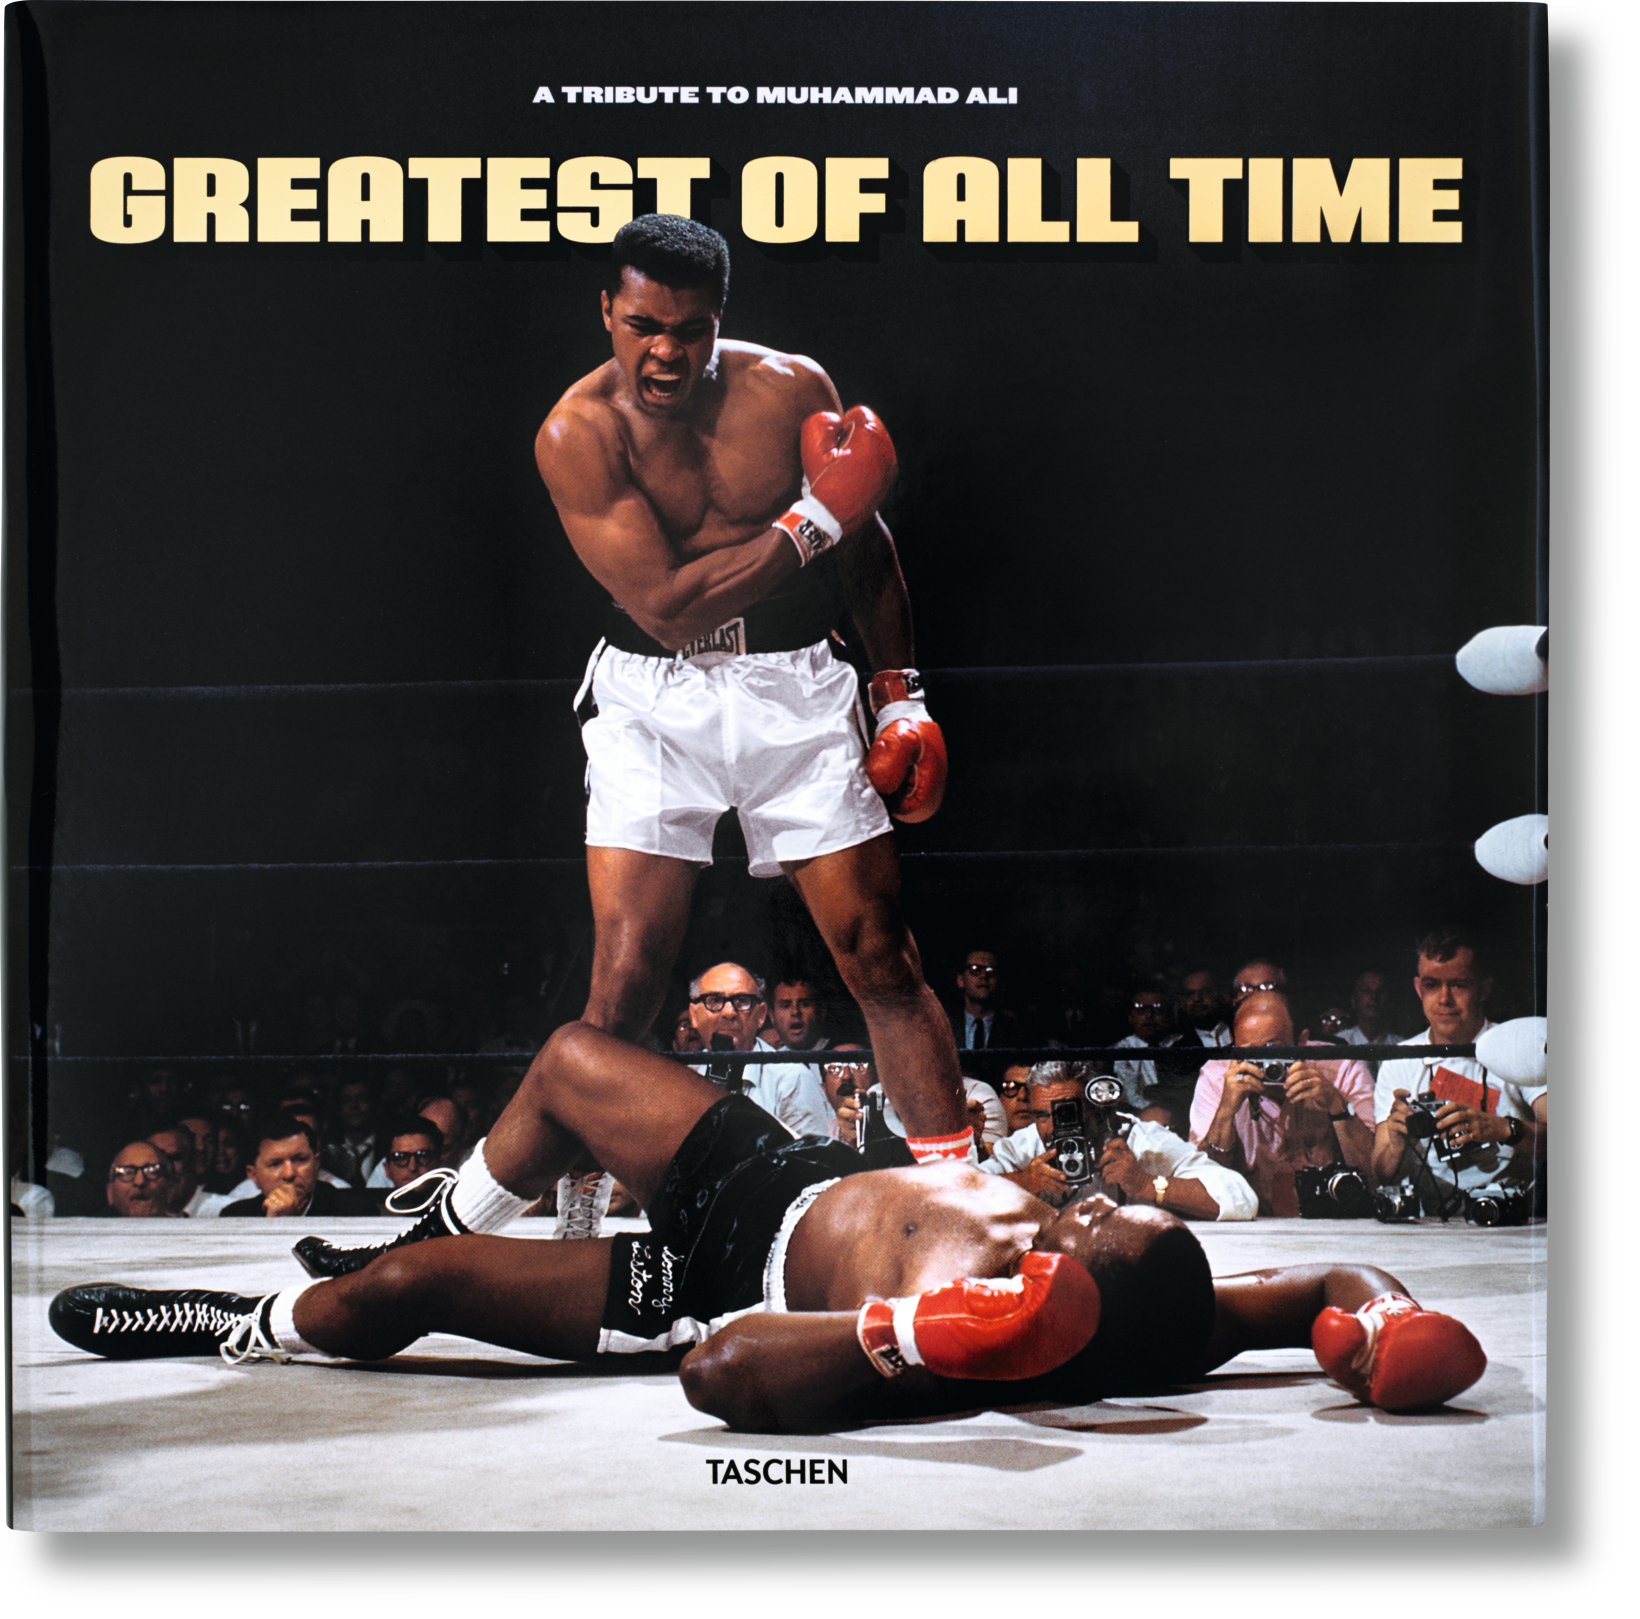 AROWONEN - Greatest of All Time. A Tribute to Muhammad Ali